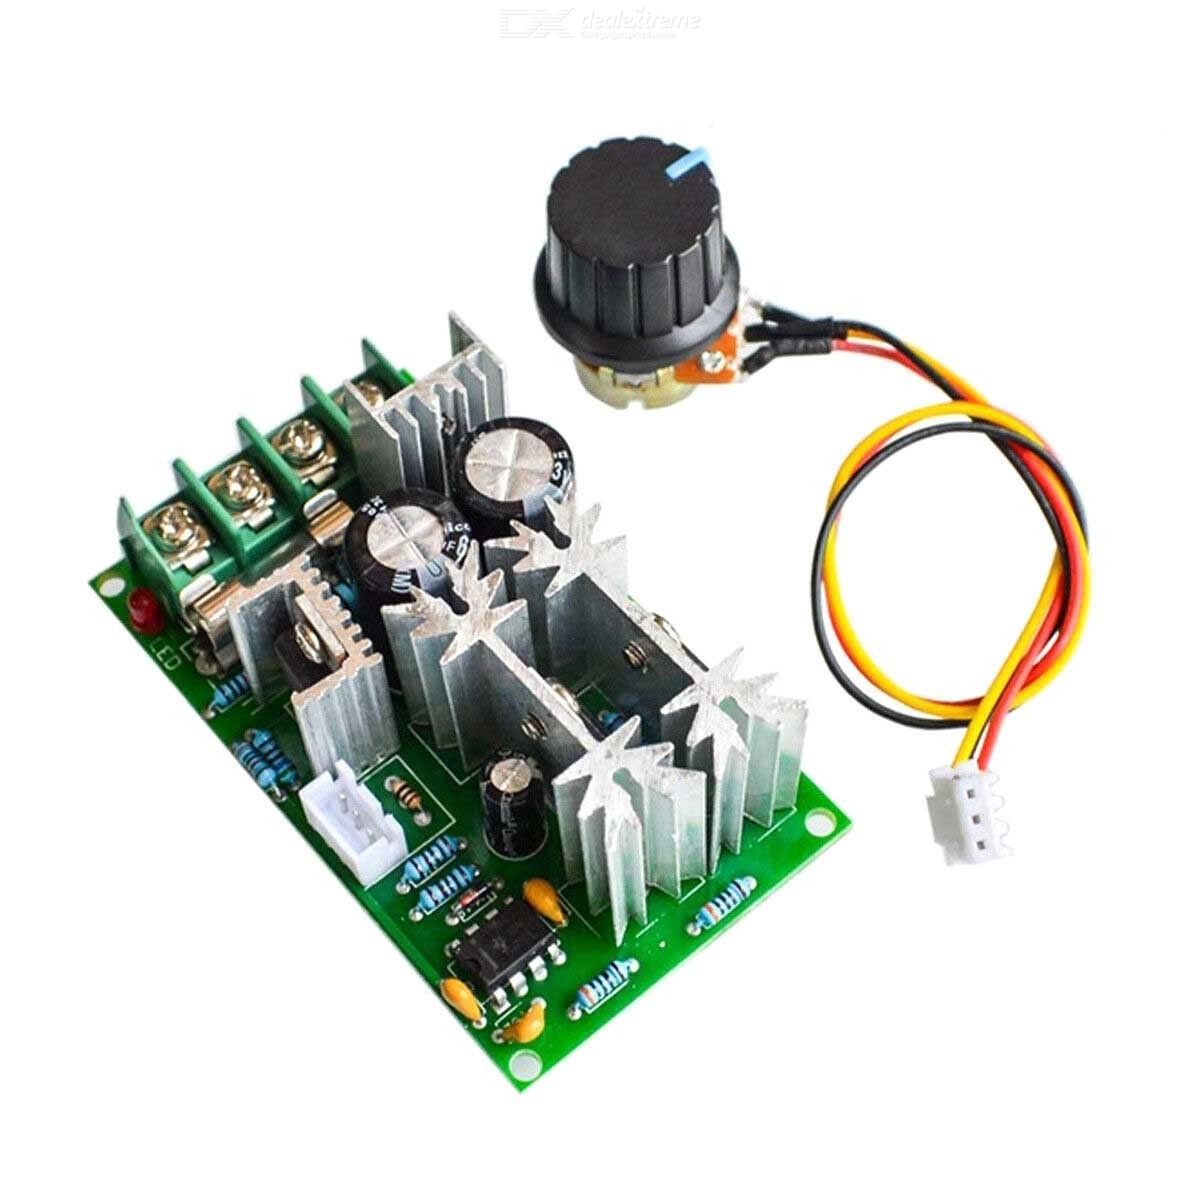 20A PWM DC Motor Speed Regulator Controller Switch Max 1200W DC 12V 24V 36V 48V